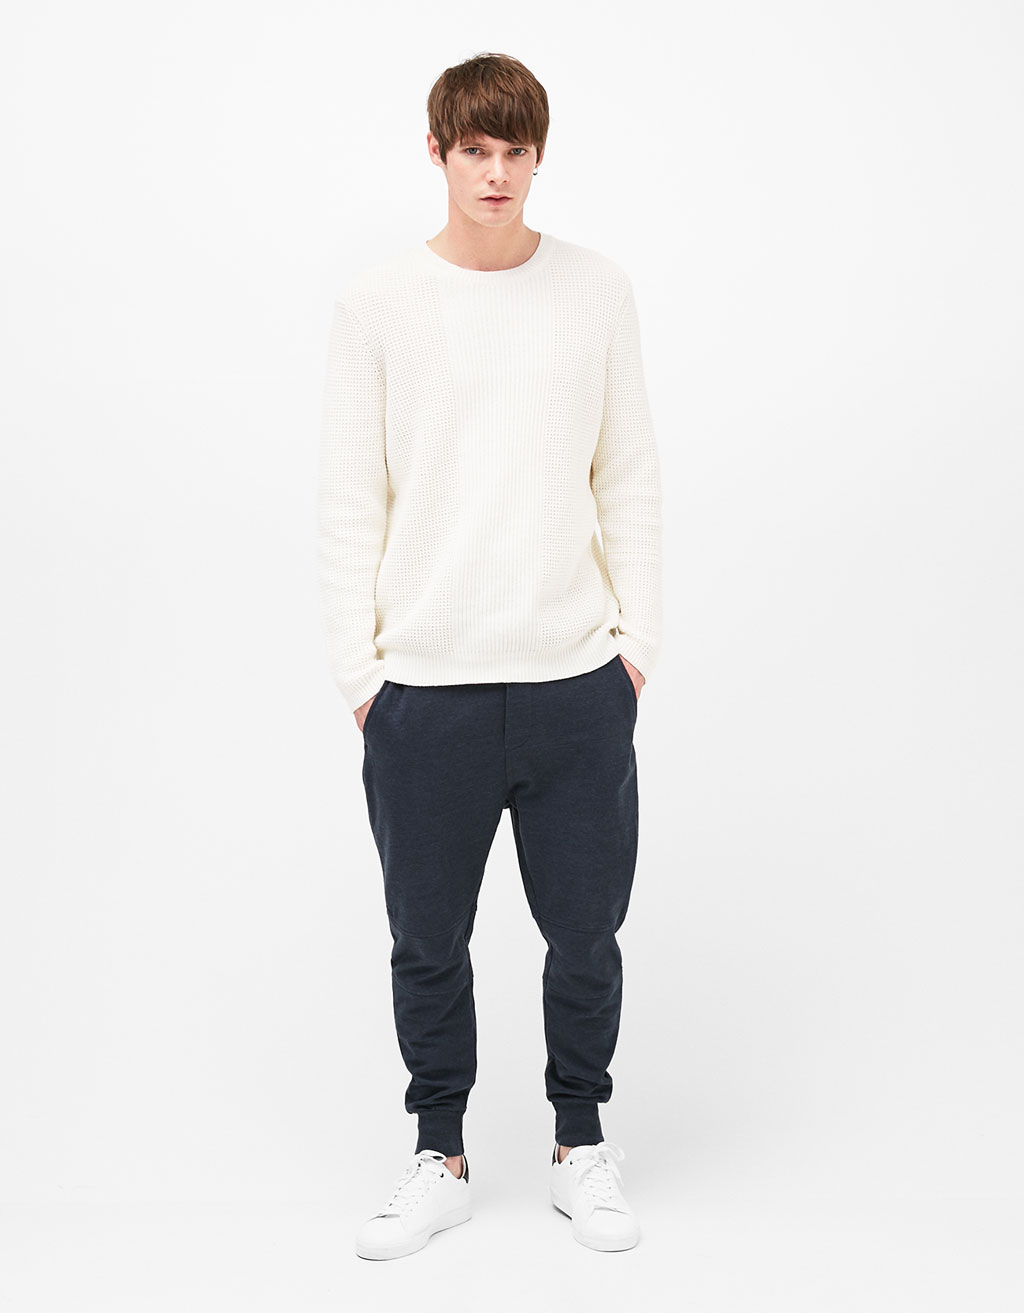 Plush jogger trousers